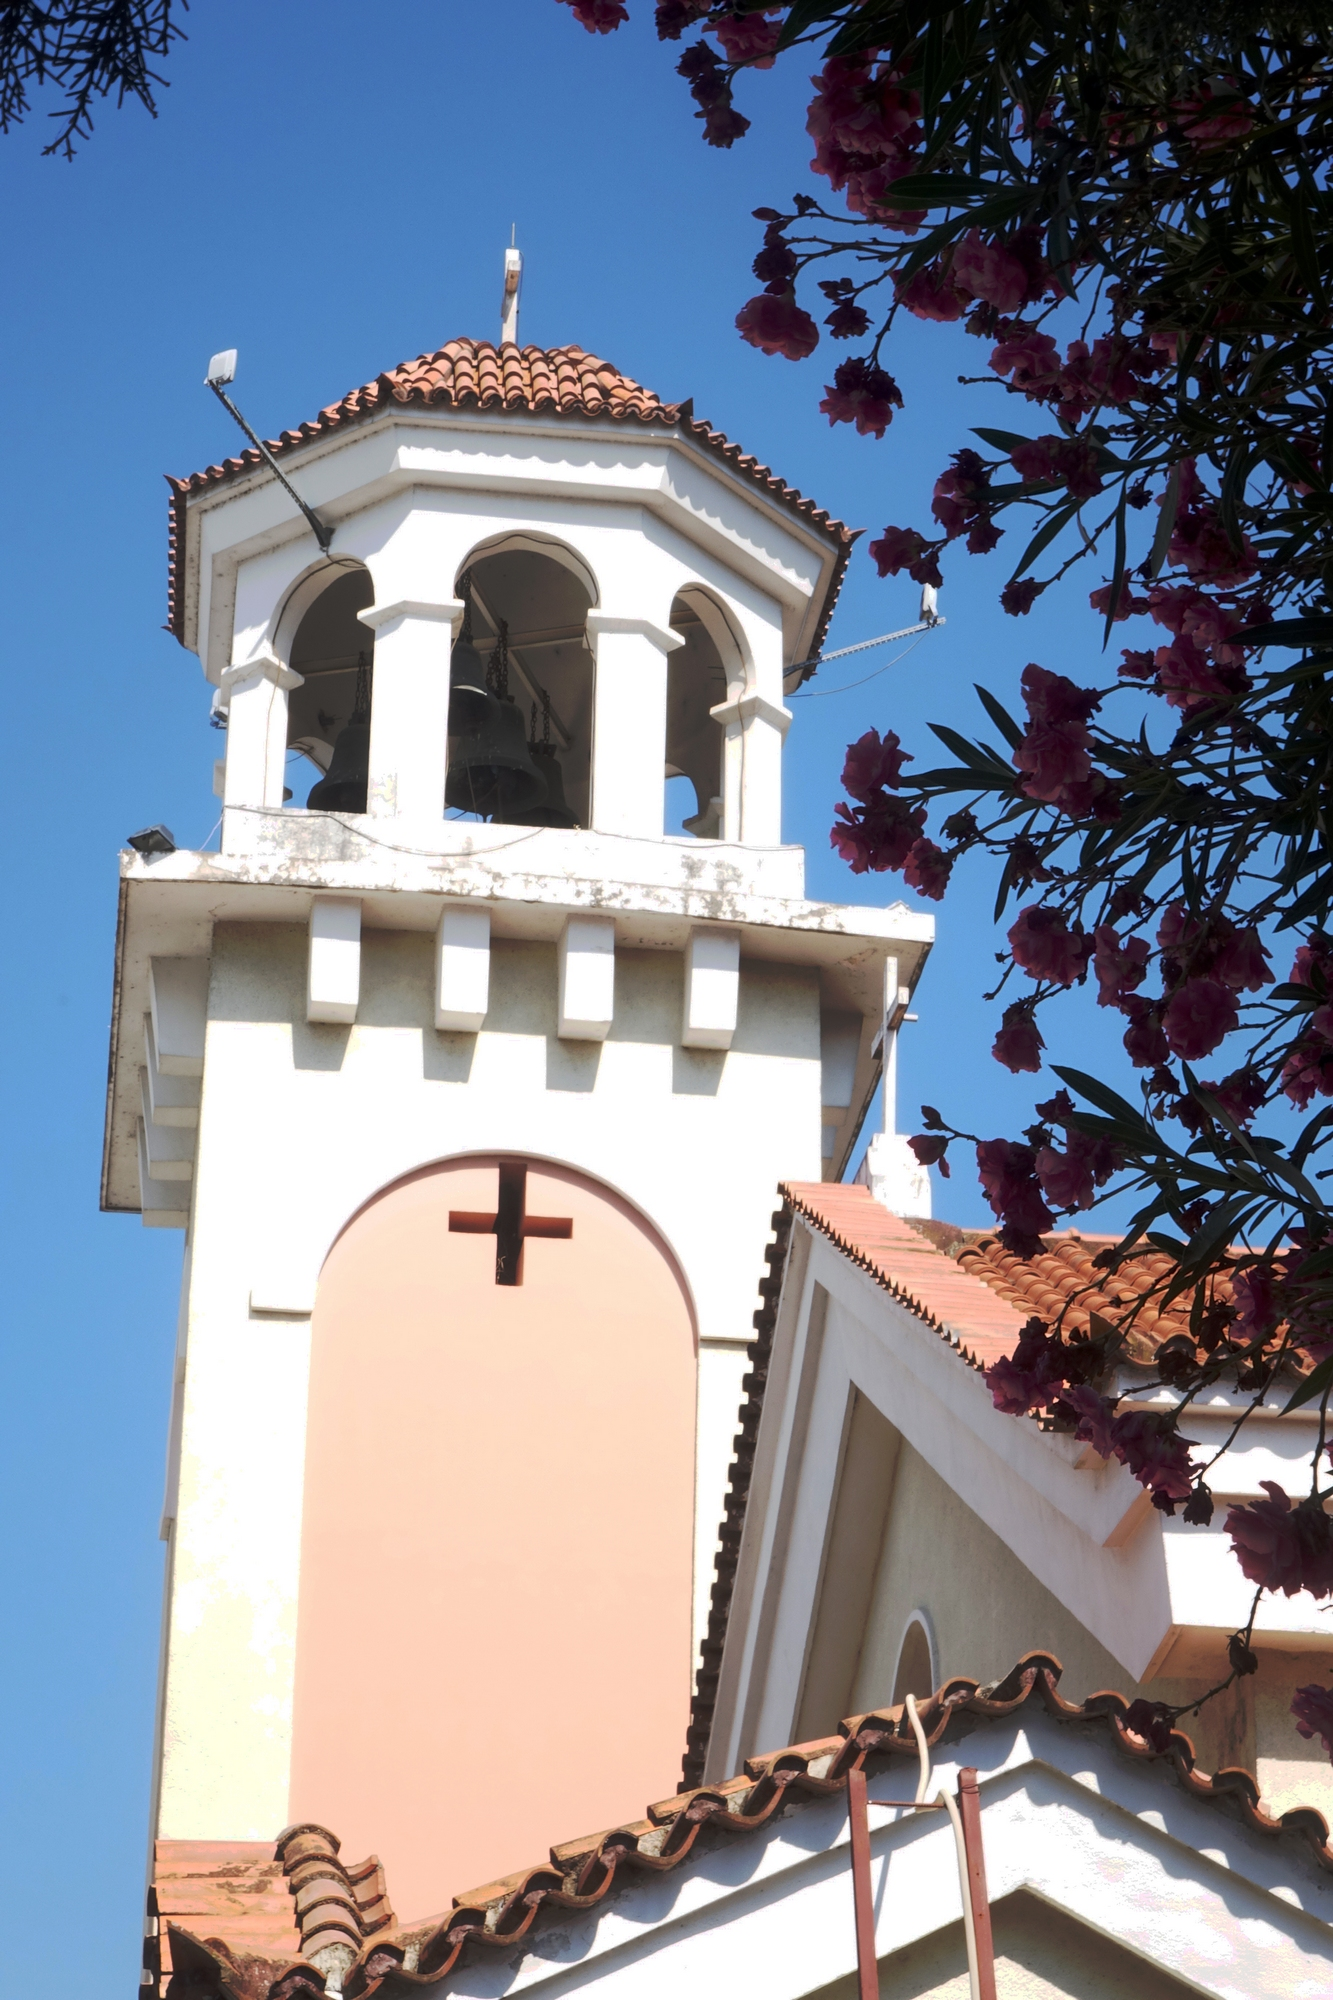 The Old Orthodox cathedral in Tirana